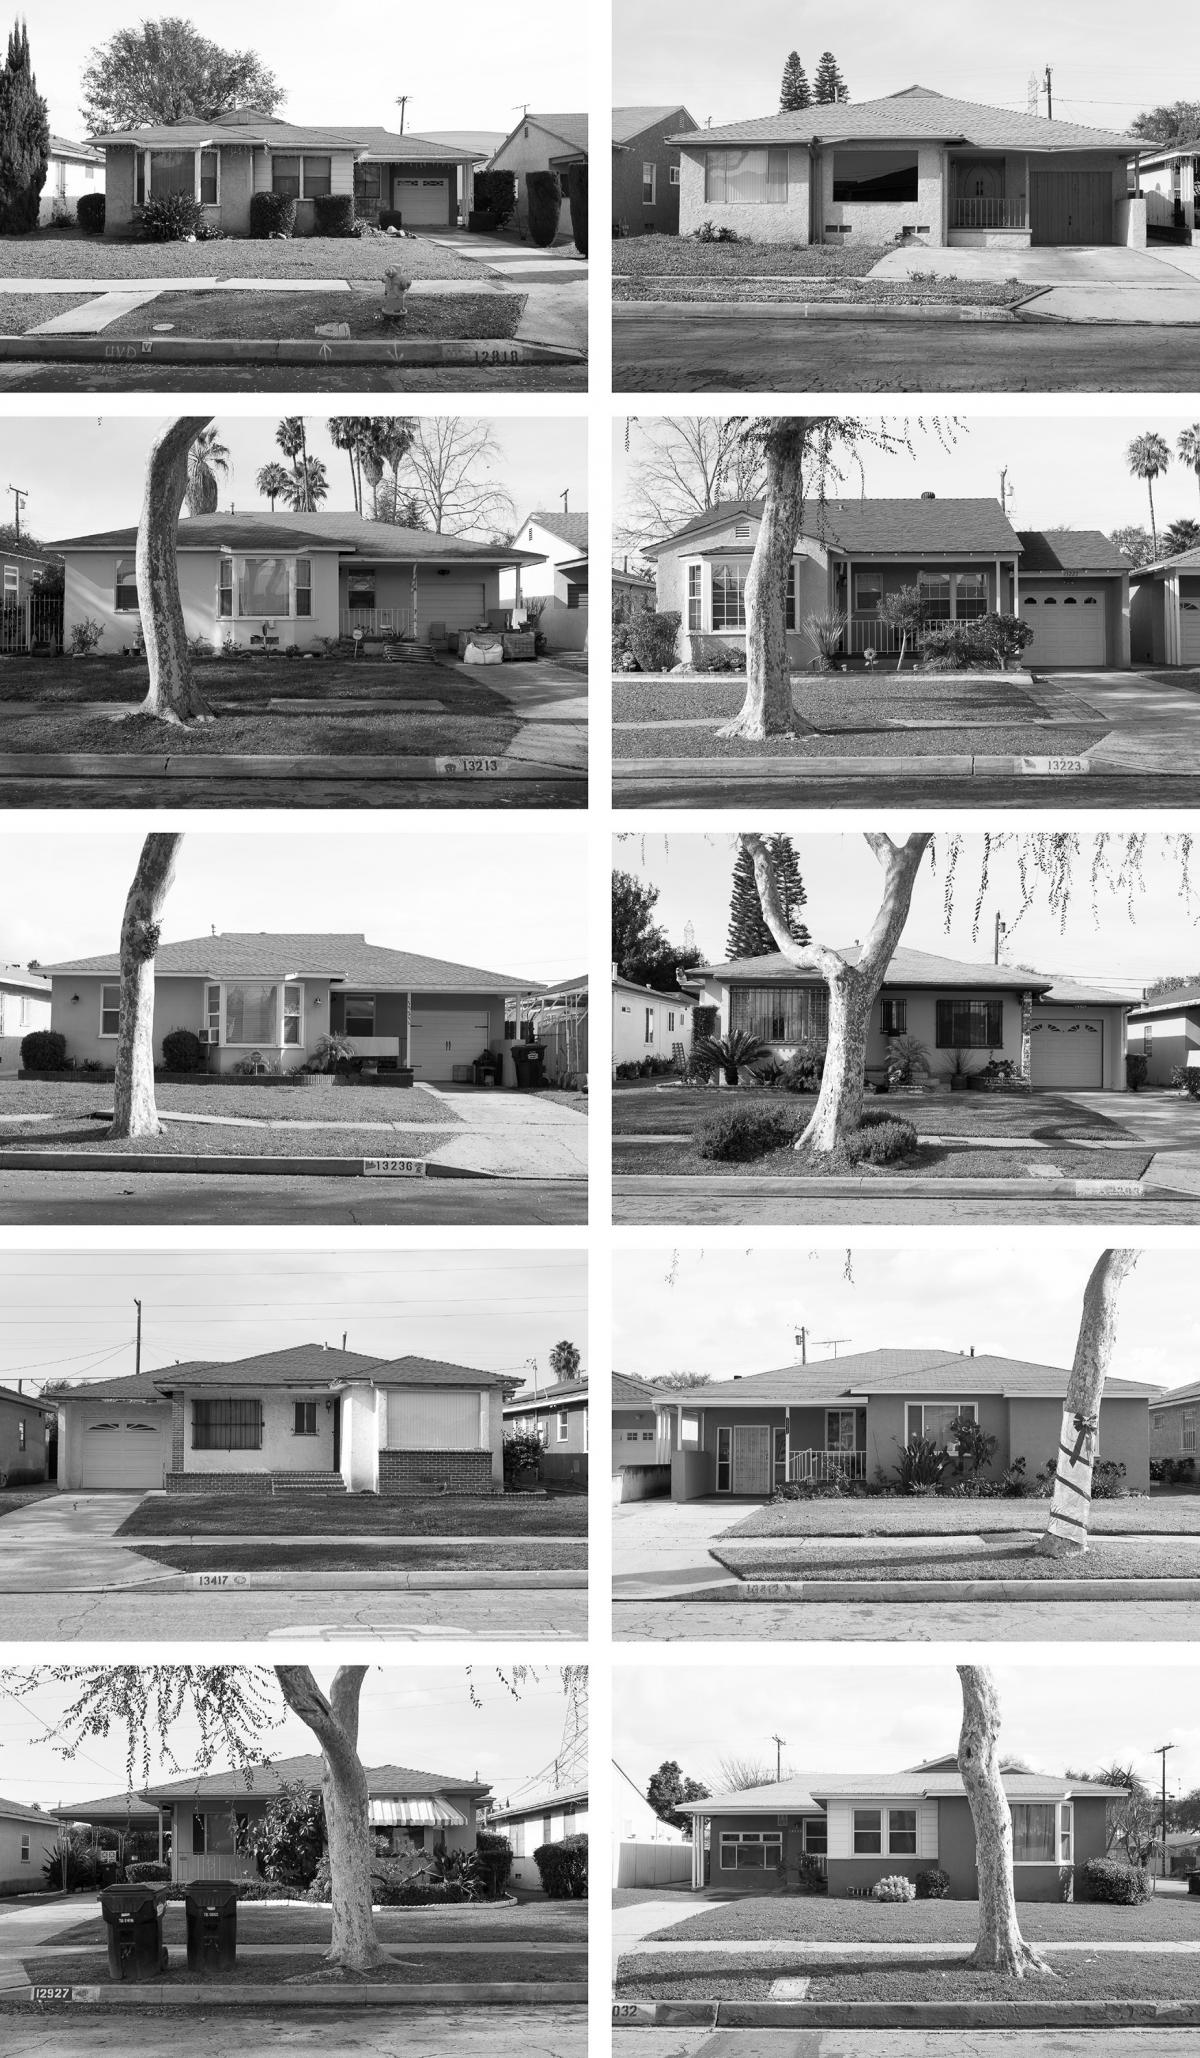 """Homes from the Carver Manor section of Willowbrook, Calif. A Black real estate agent named Velma Grant acquired the land for these 250 tract homes and hired Williams to design them for Black veterans returning from World War II. Instead of creating """"cooki"""